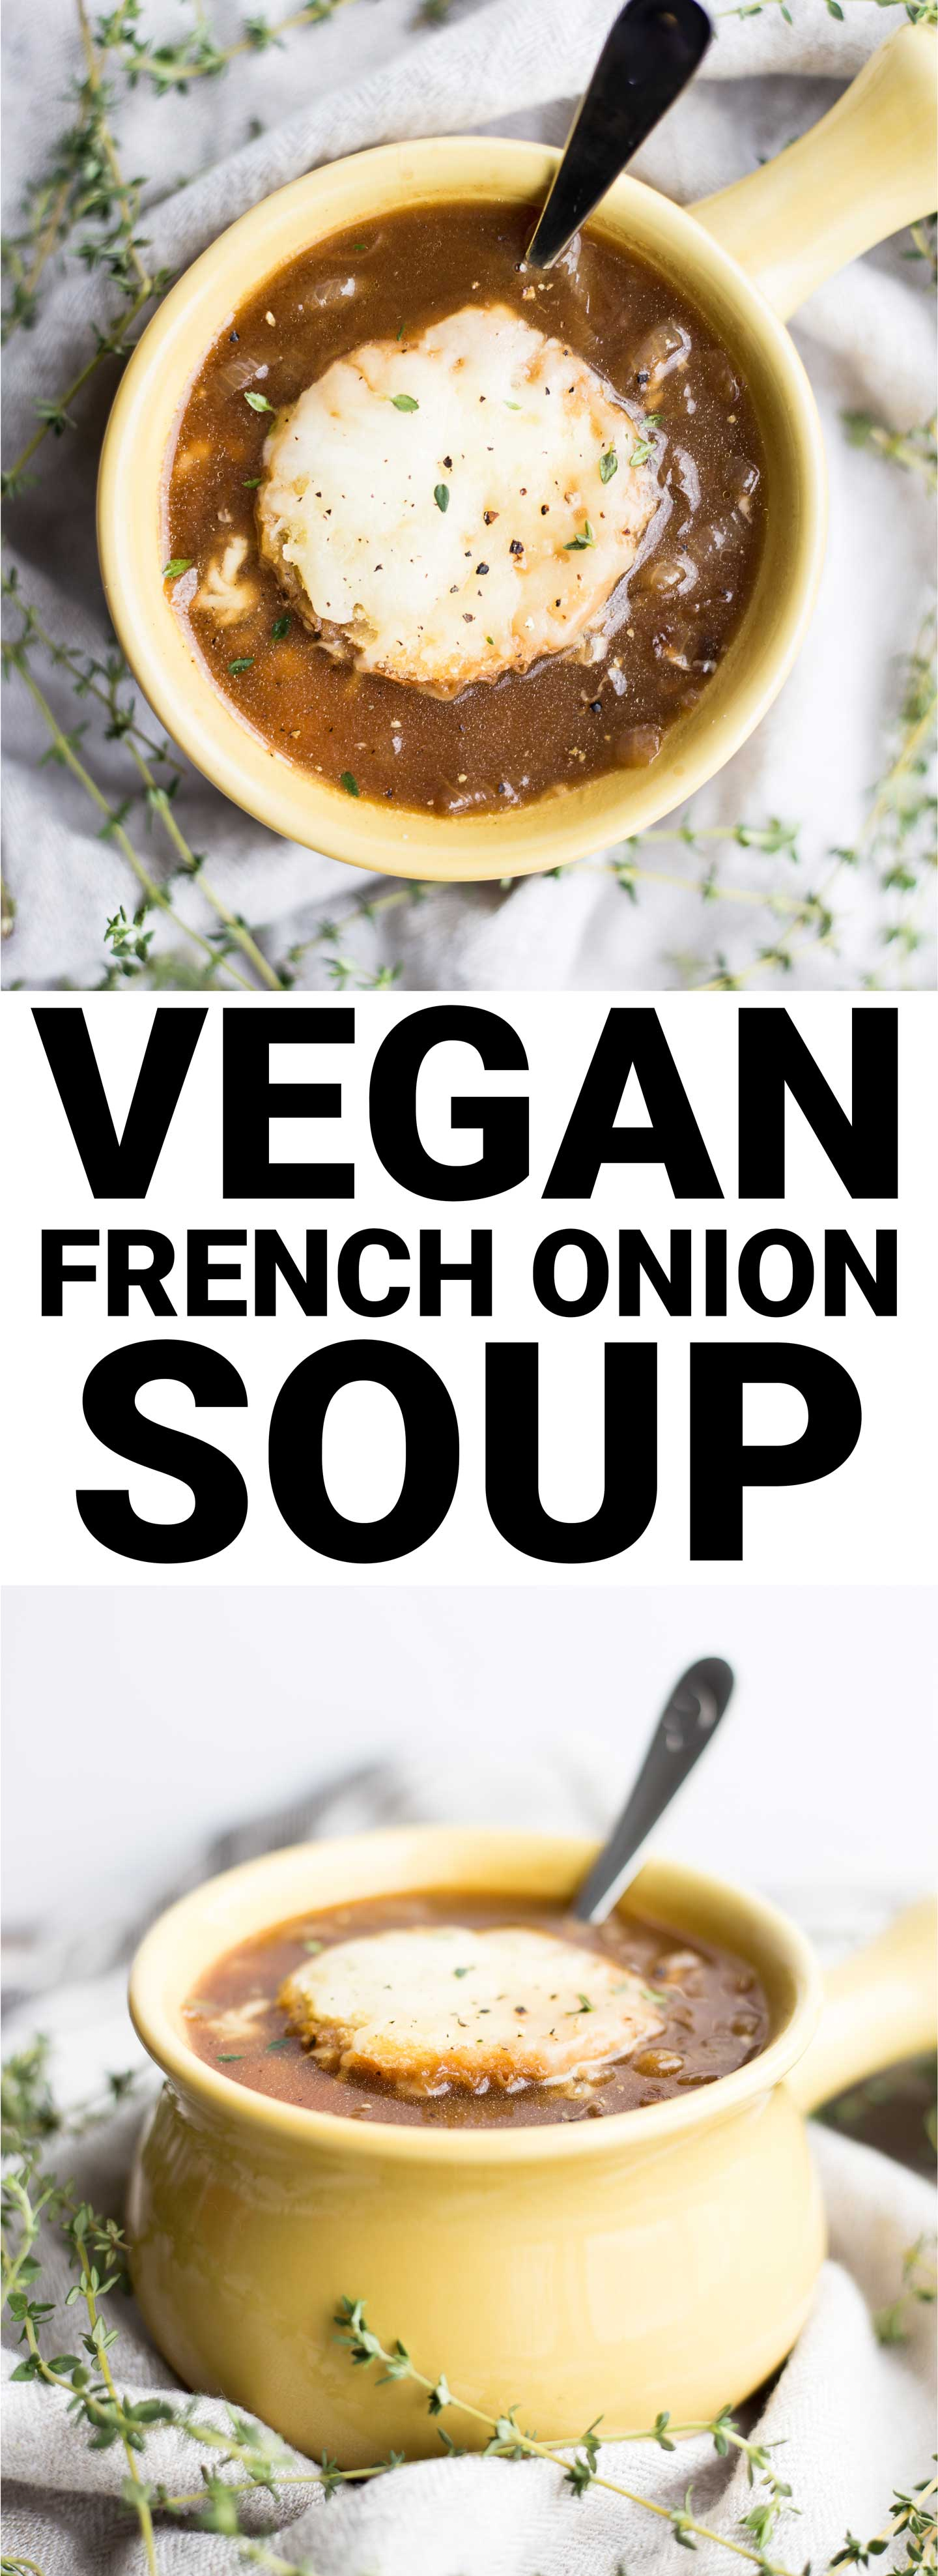 Vegan French Onion Soup - Fooduzzi